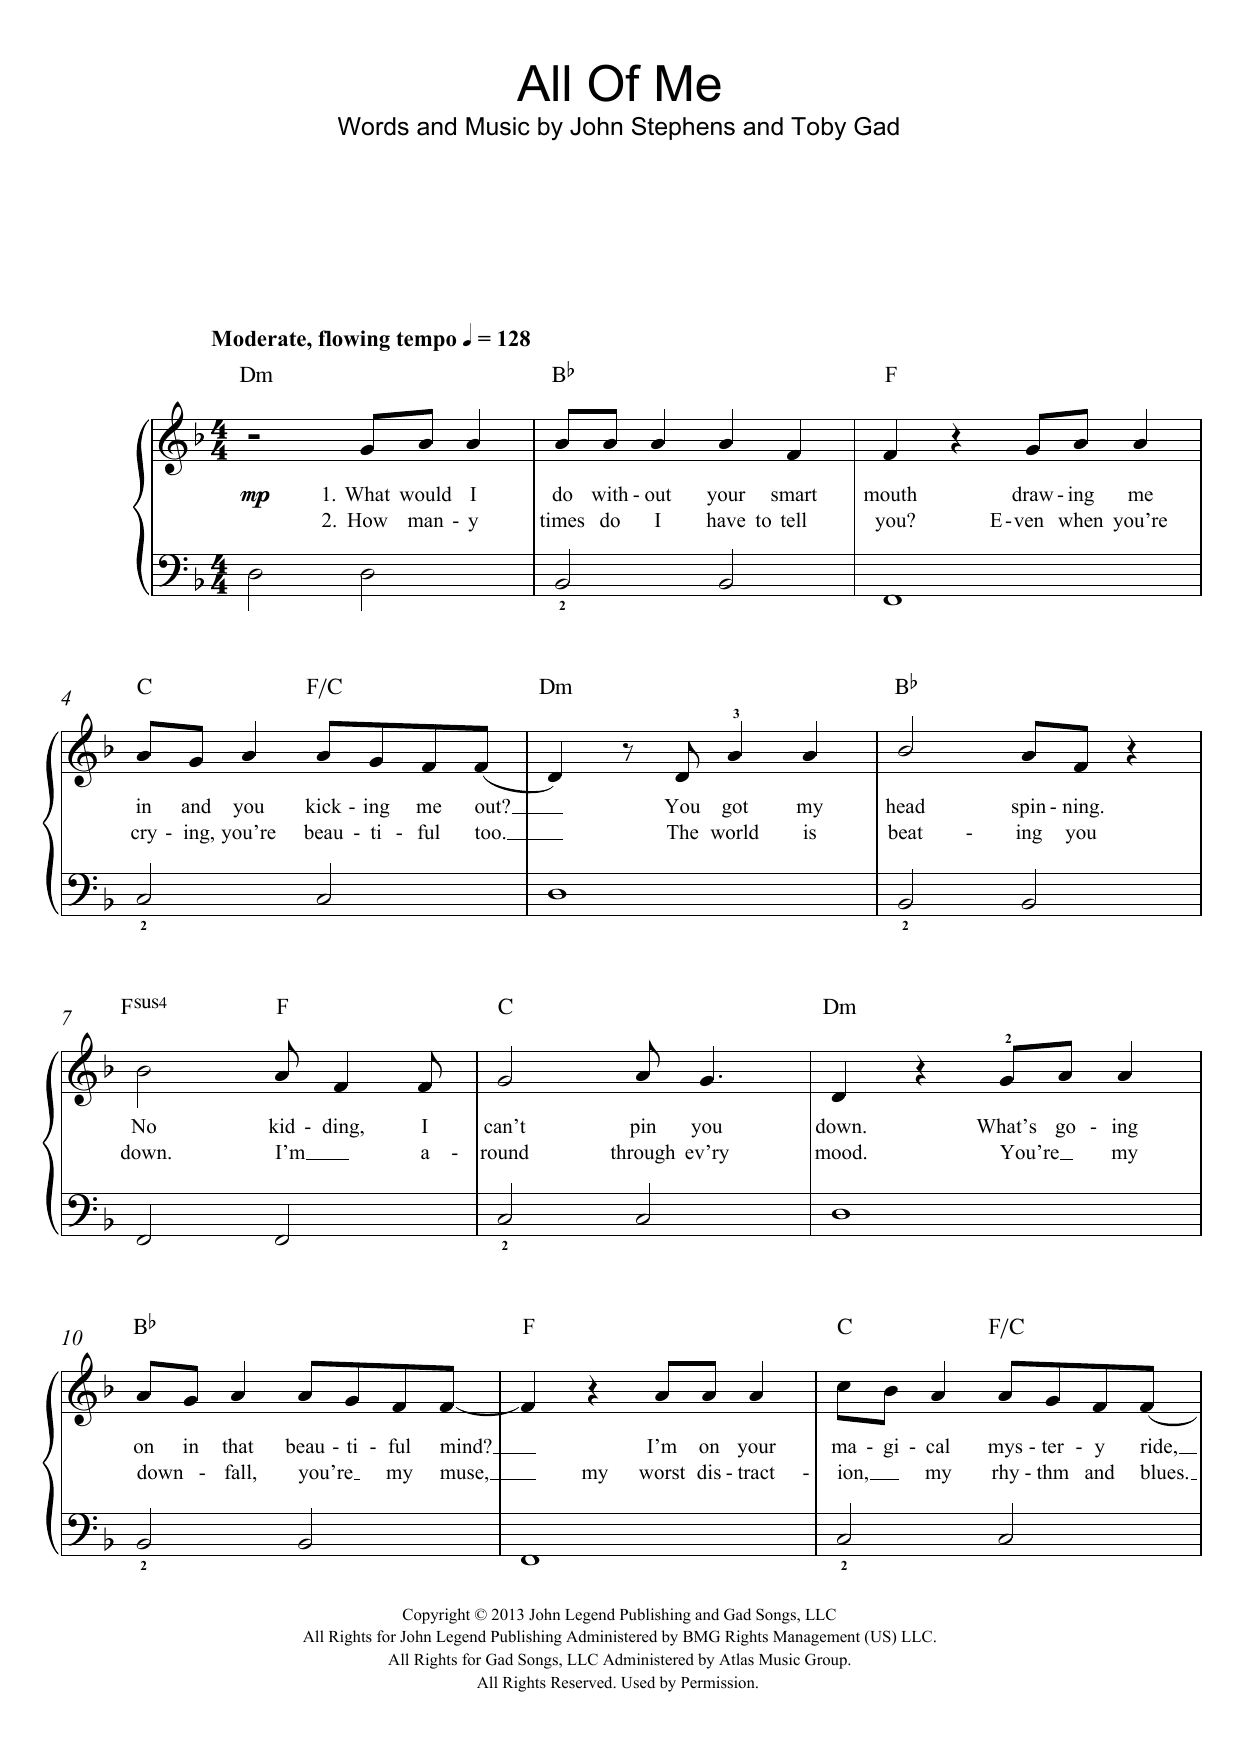 All Of Me Piano Sheet Music all of me